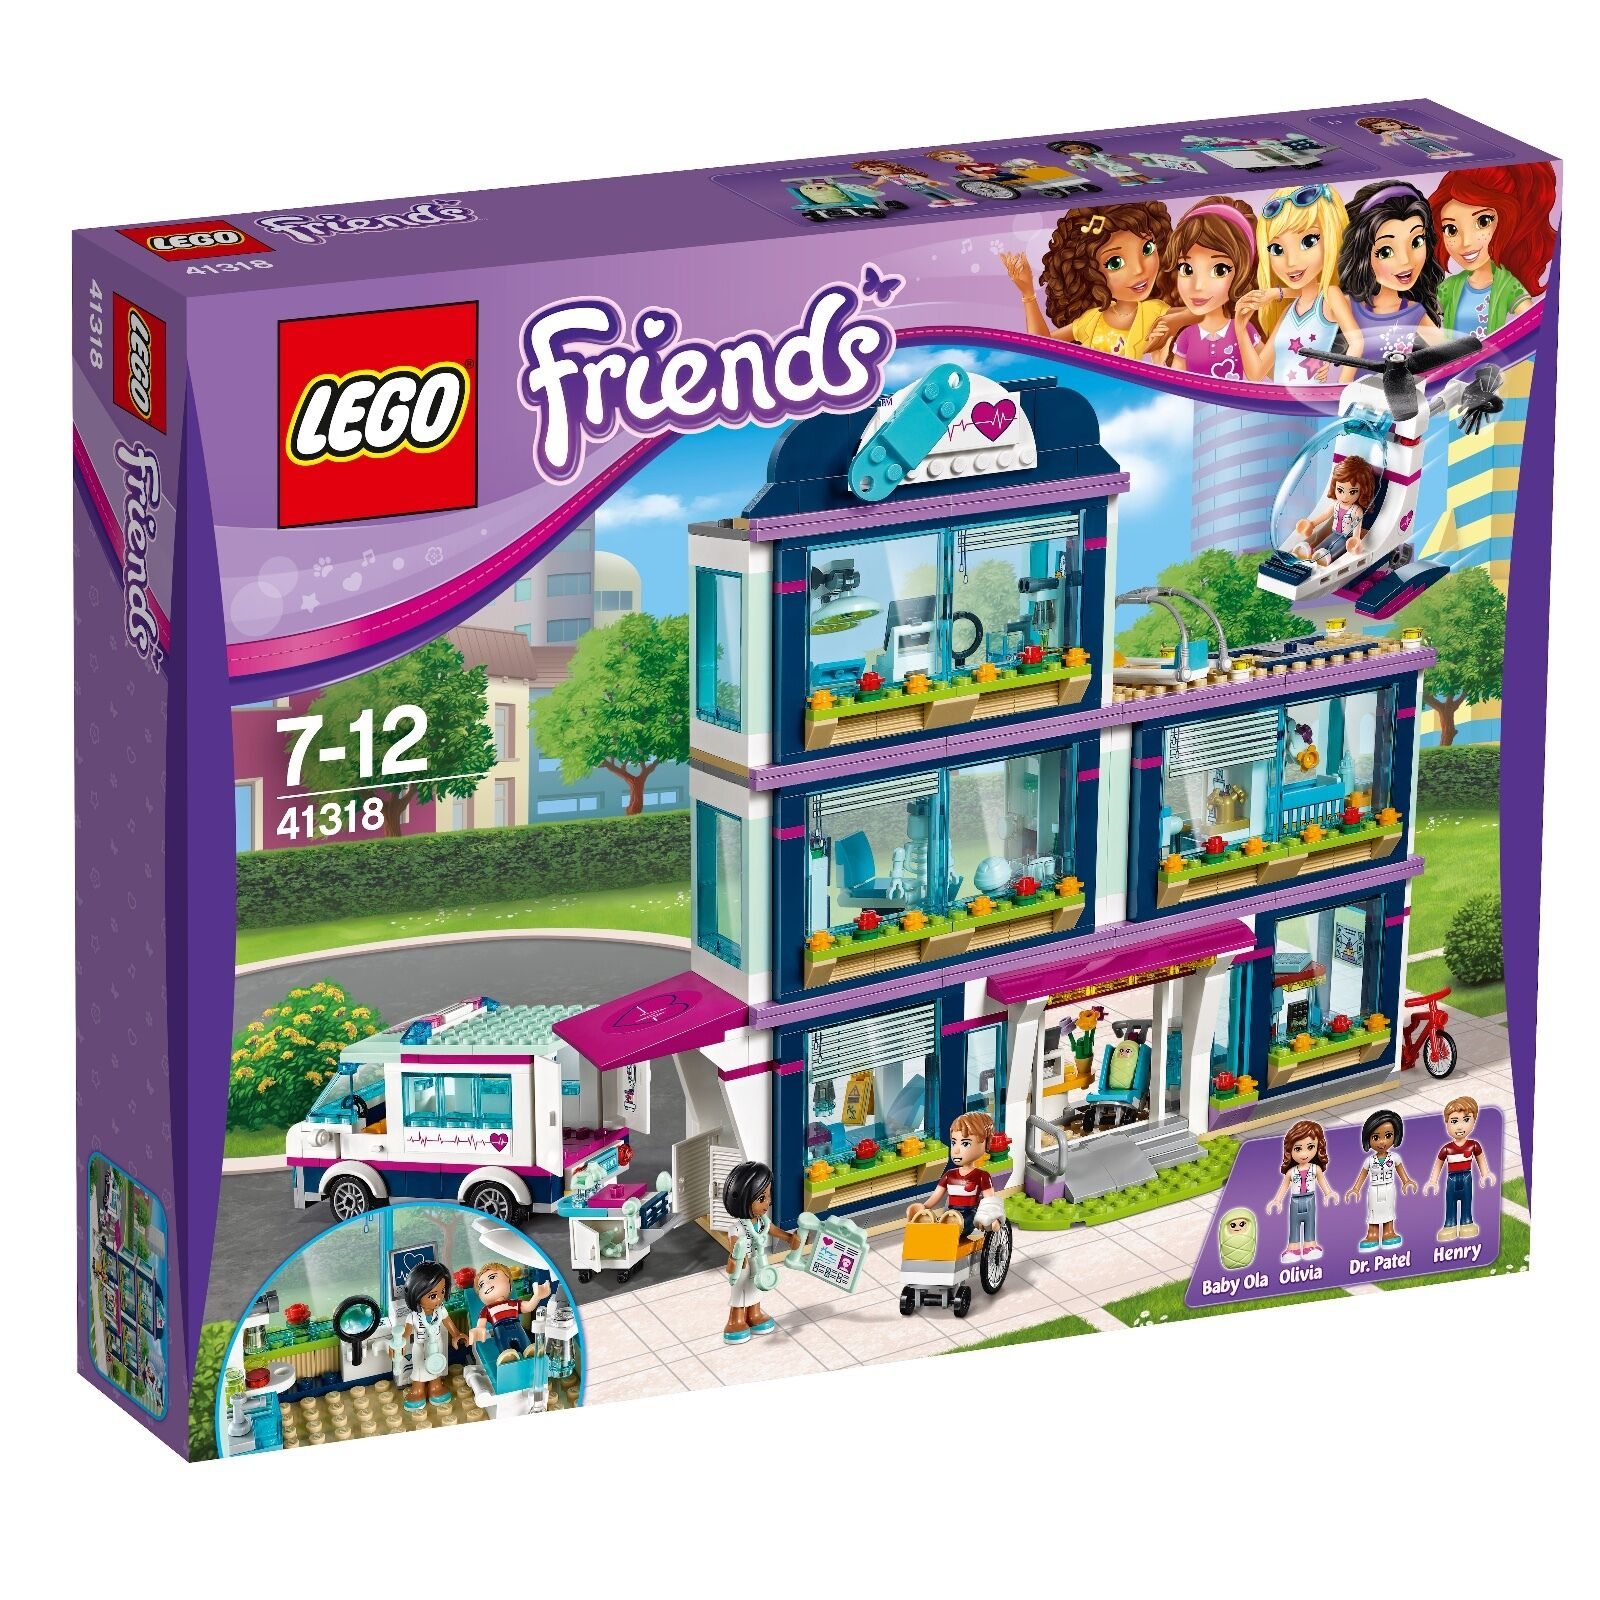 LEGO ® Friends 41318 Heartlake ospedale NUOVO OVP _ Heartlake Hospital NEW NRFB